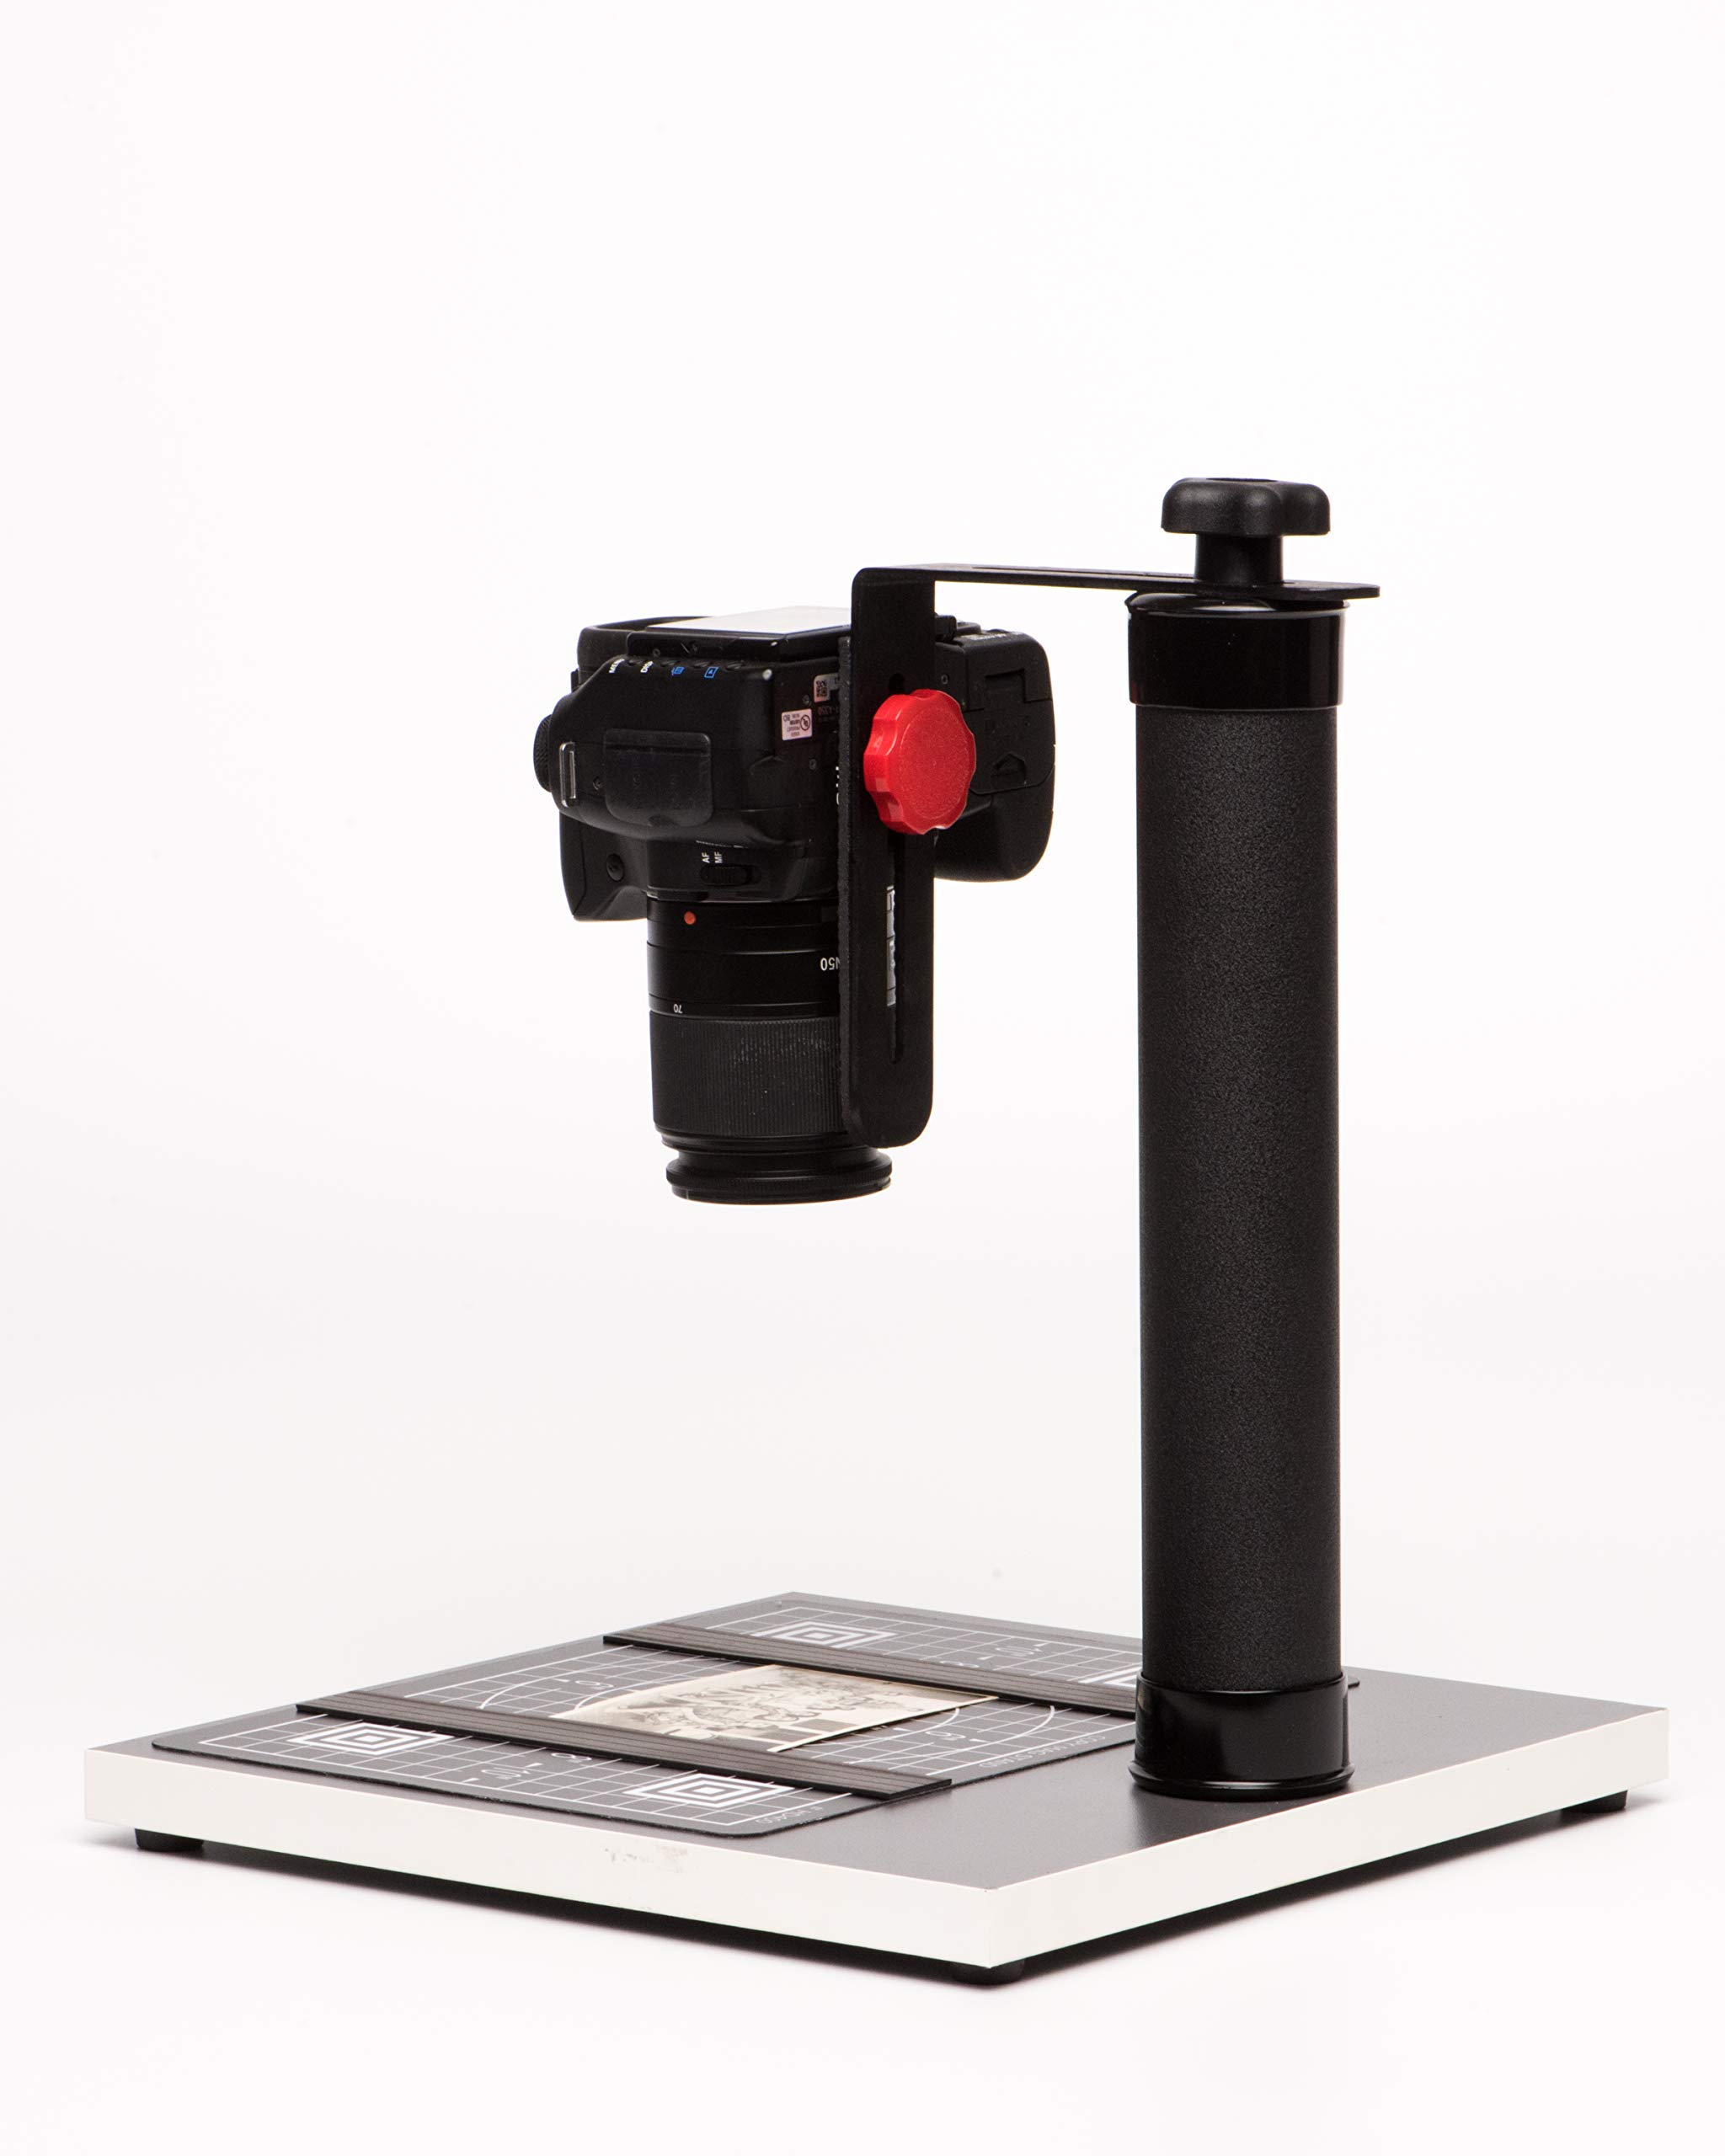 COPY STAND # HD400, A Compact & Small Tool for Digitizing Documents, Photos, or Small Objects with Today's SLR Super Megapixel Cameras by Stand Company (Image #8)